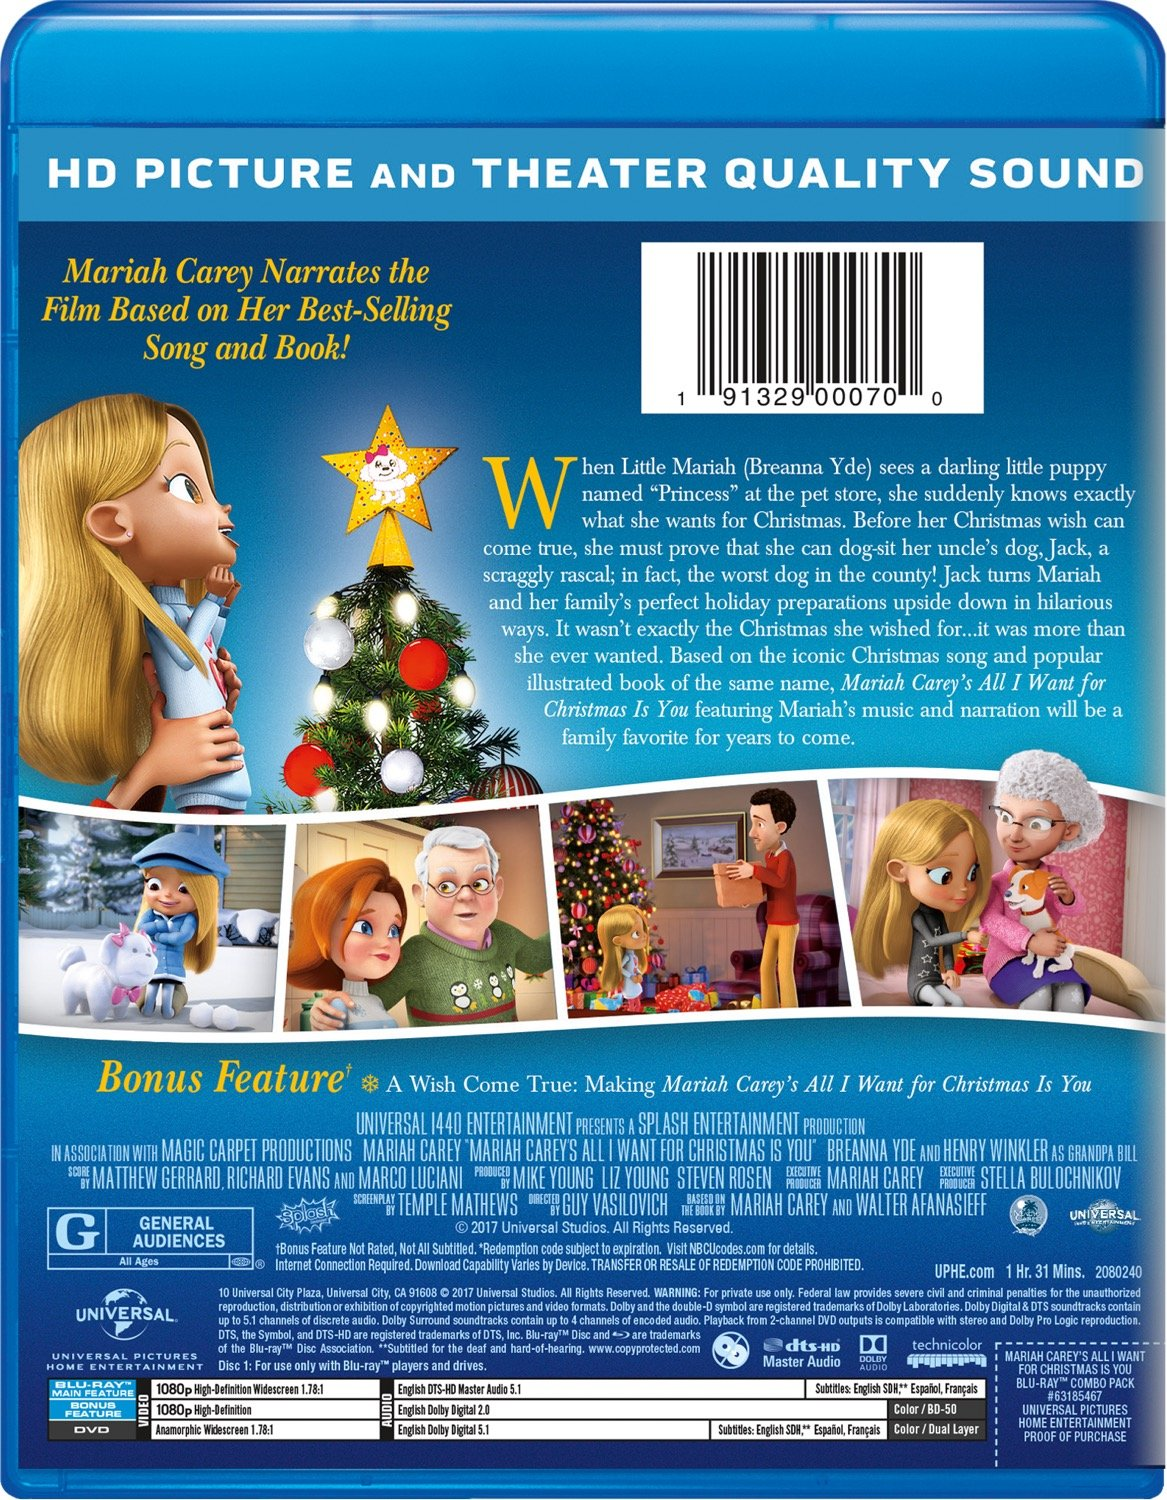 amazoncom mariah careys all i want for christmas is you blu ray breanna yde henry winkler mariah carey guy vasilovich mike young liz young - Best Selling Christmas Song